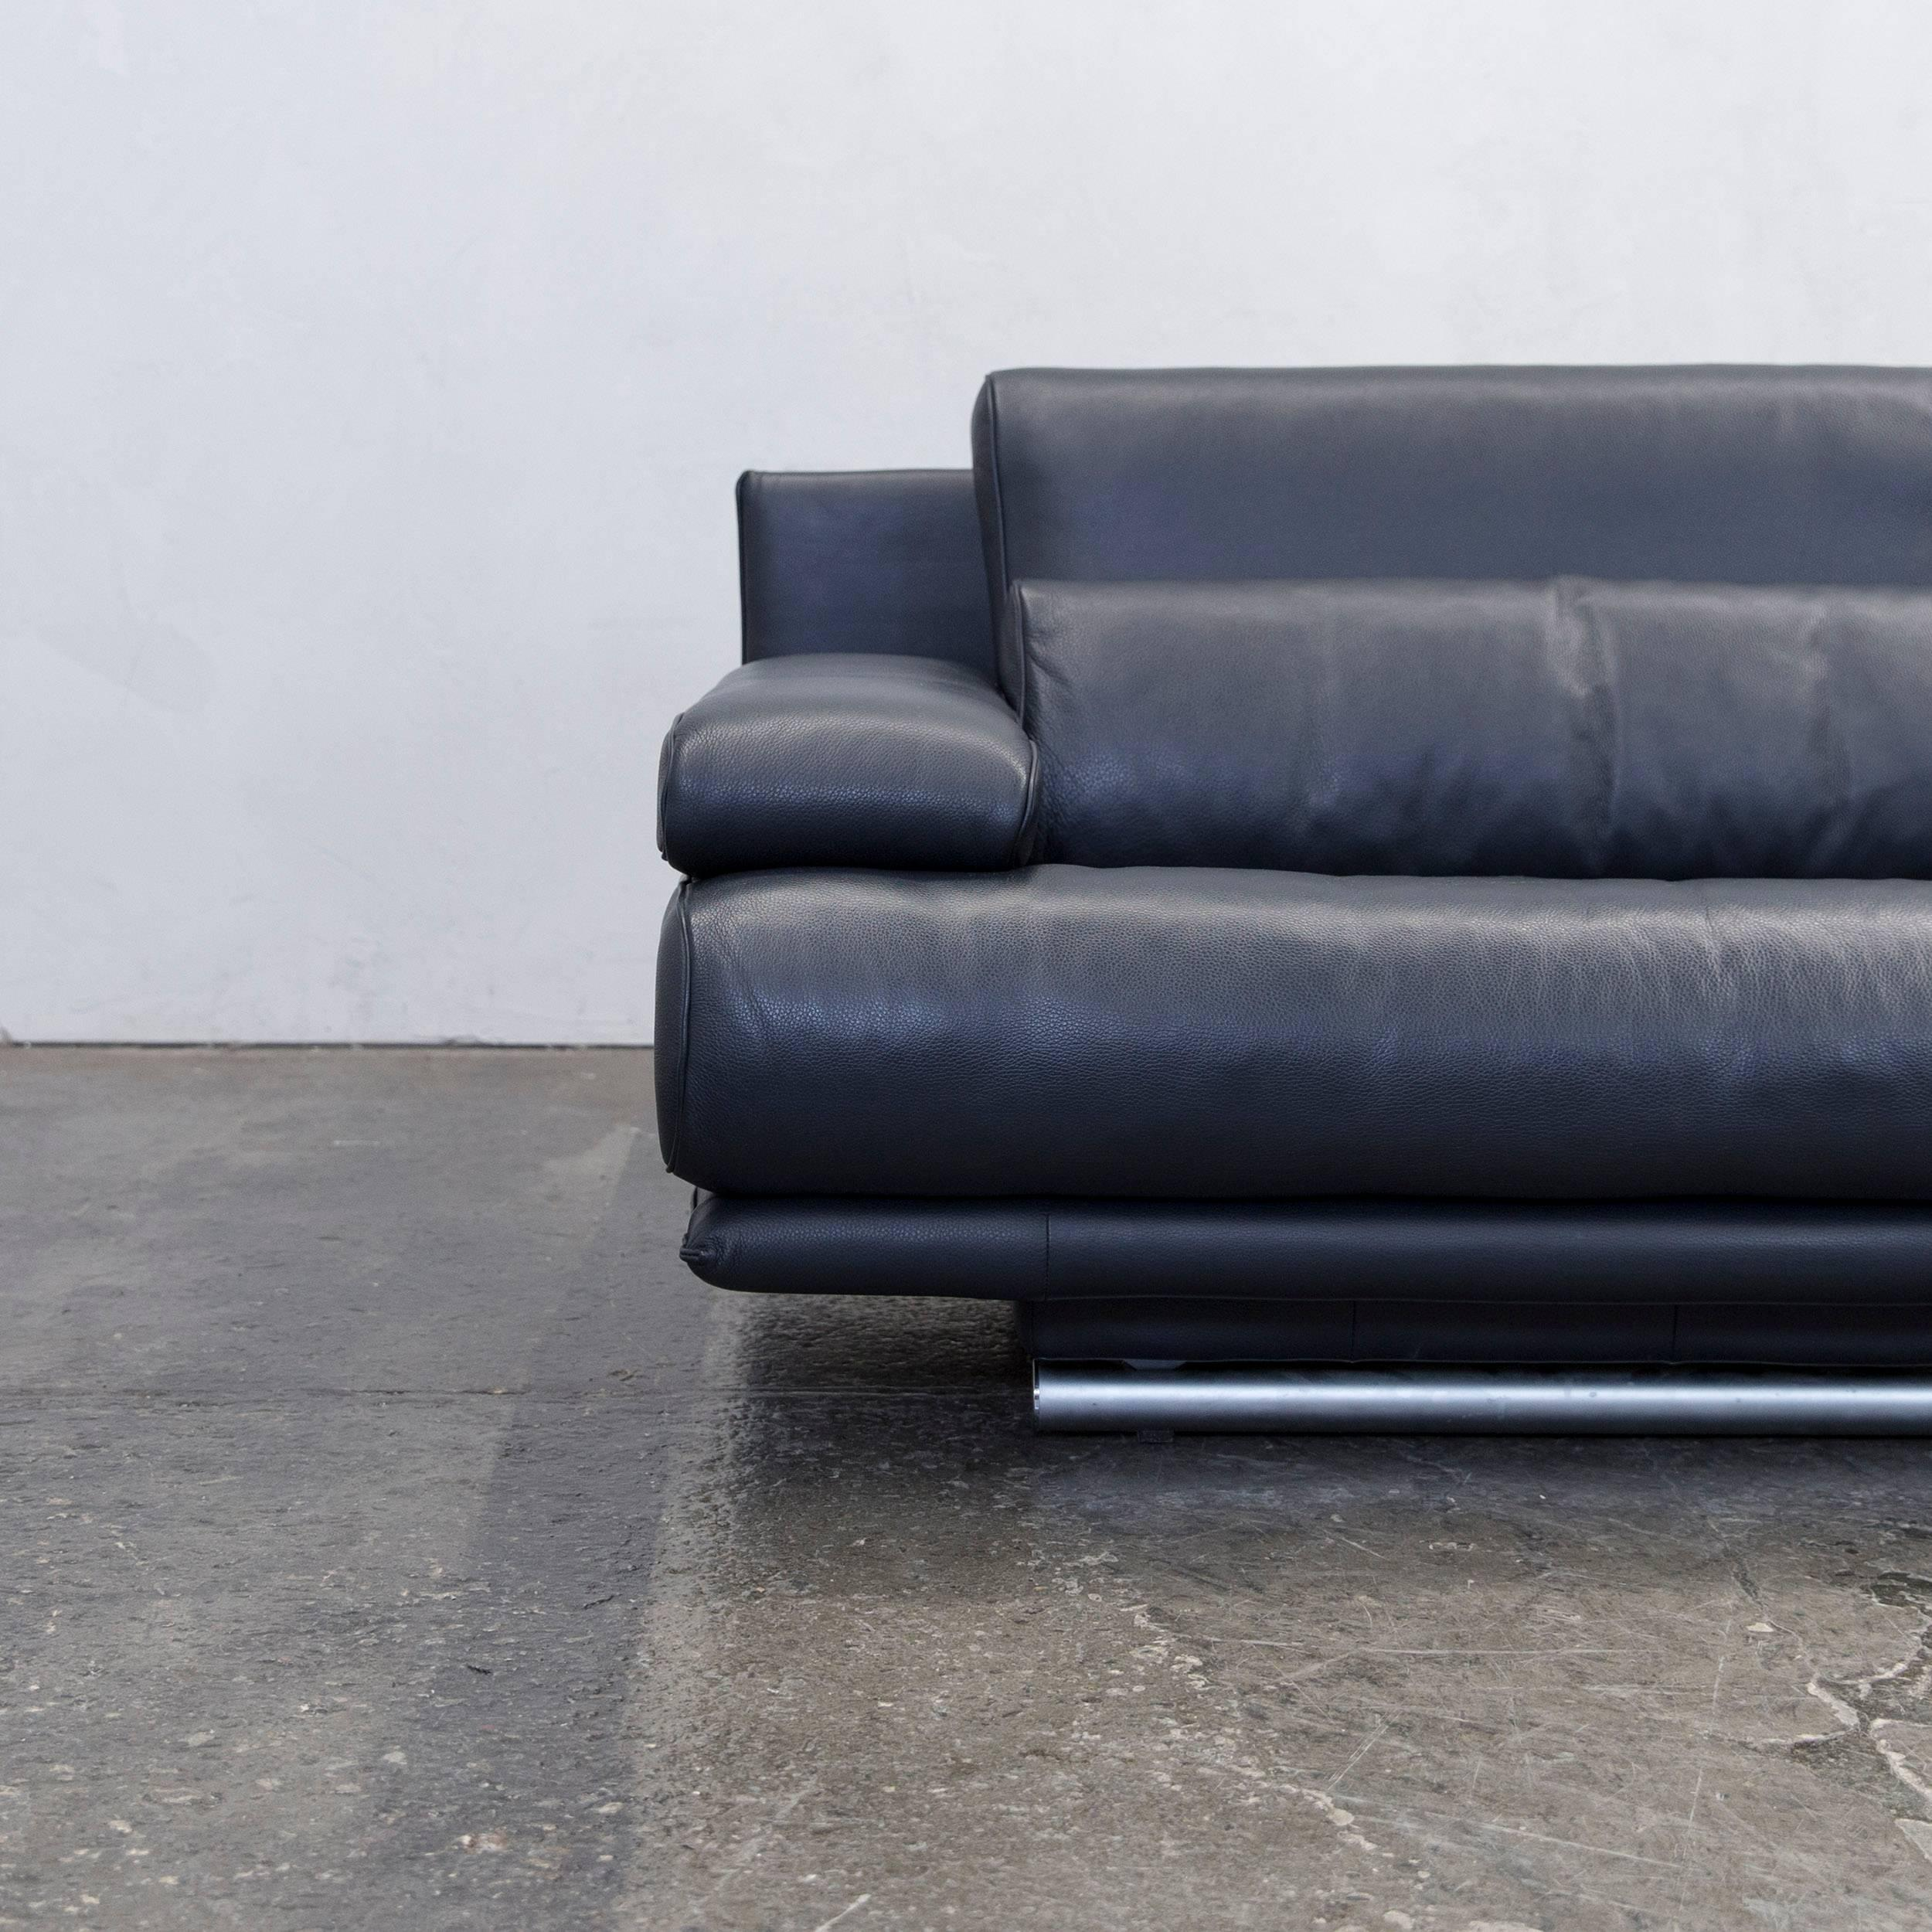 Couch Zweisitzer Rolf Benz 6500 Leather Sofa Black Two Seat Couch Modern